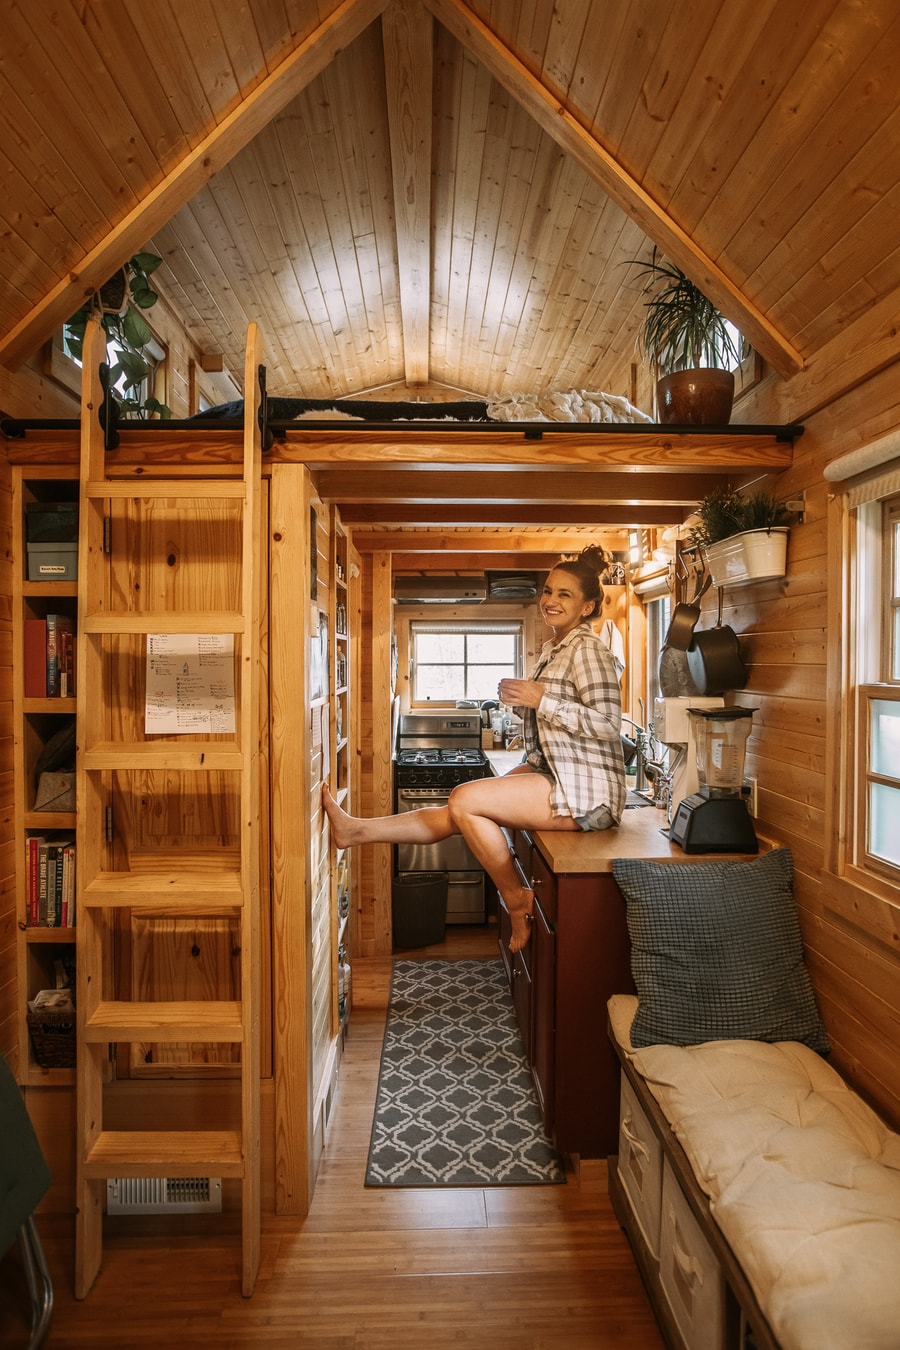 Renting a Tiny Home in Salt Lake City, UH